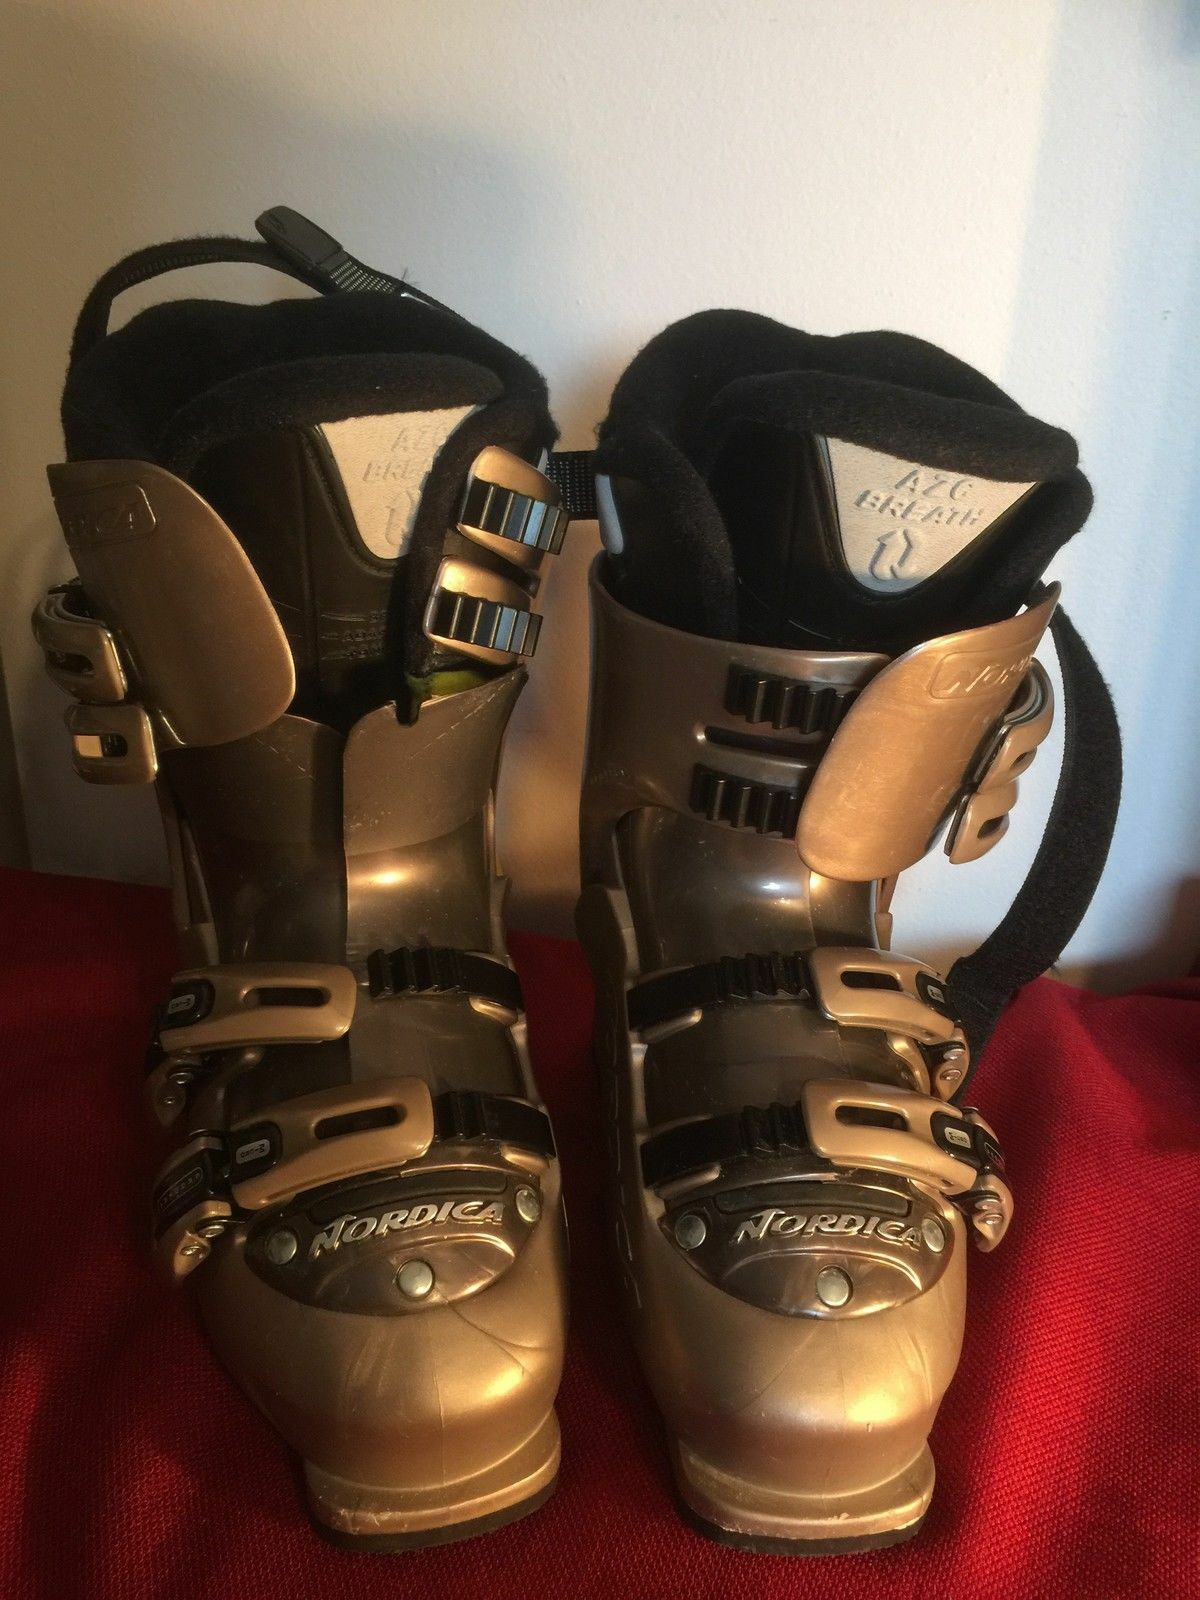 Nordica Women's Ski Boots Trend07 Size 23.5 Made in  EXCELLENT